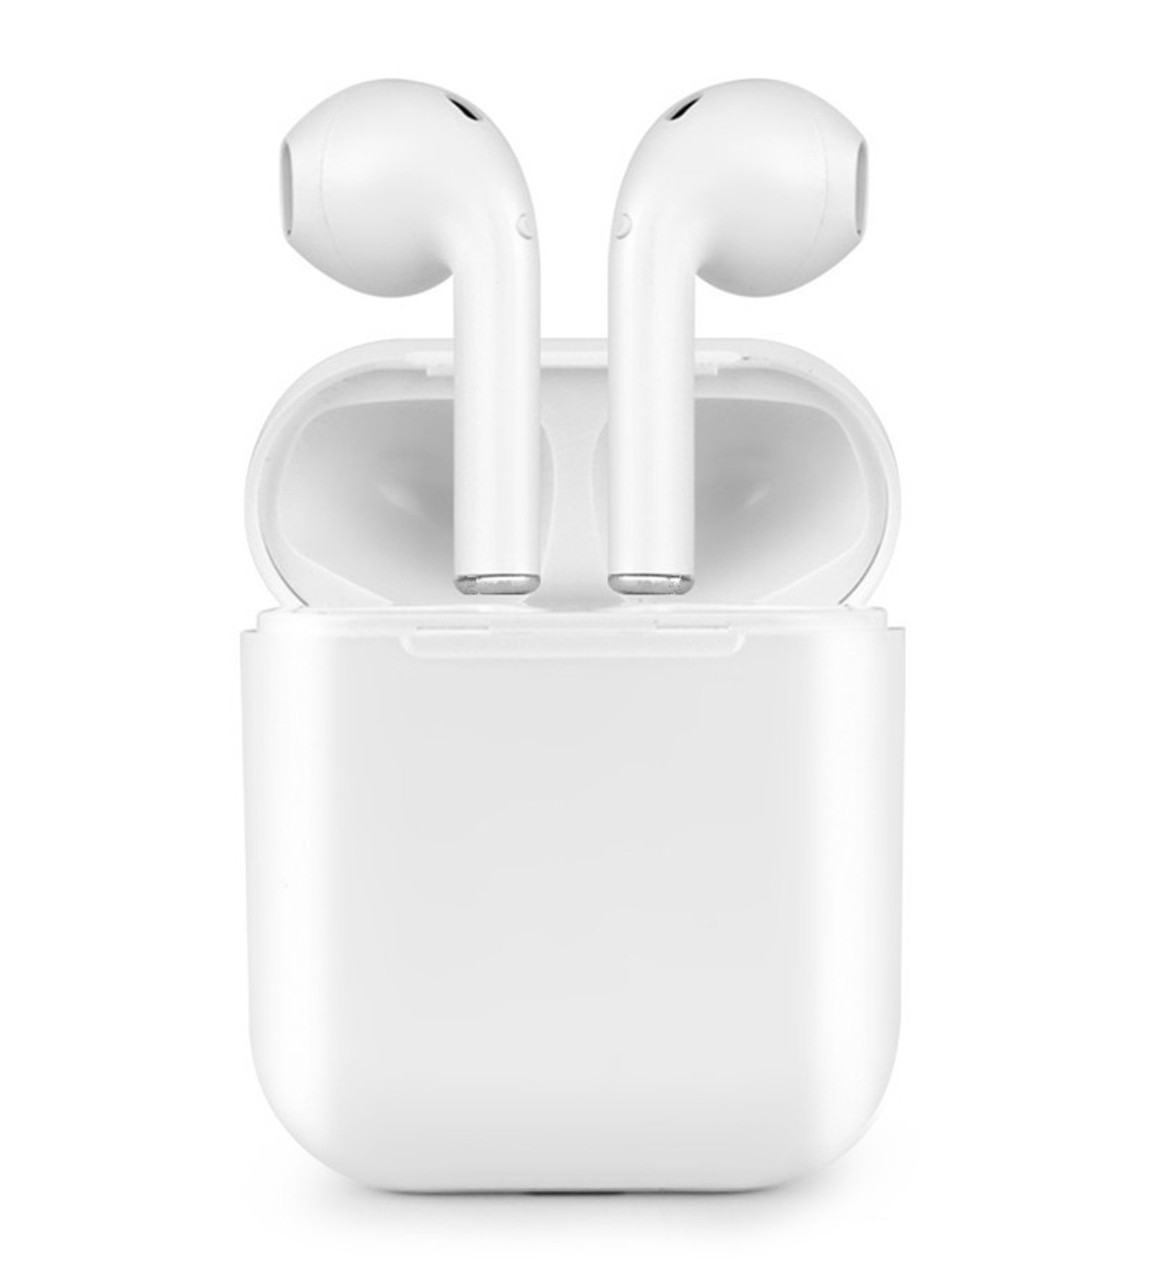 App-EV01192WHT v4.2 HD Stereo Sound Bluetooth Earbuds with Charging Case (White)